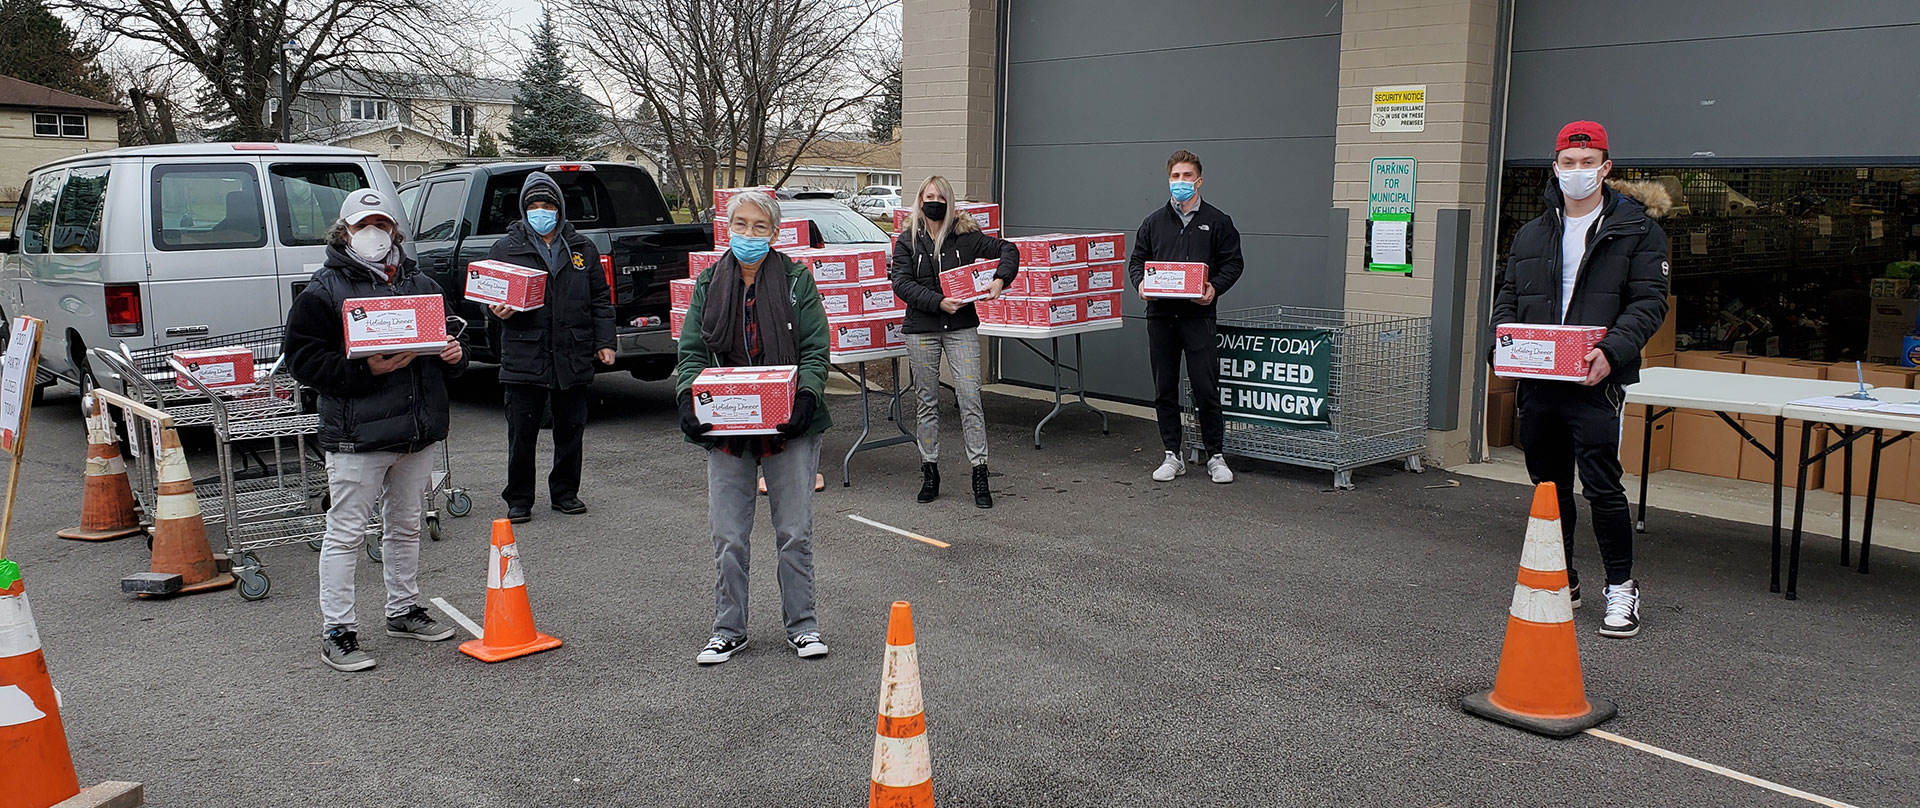 Maine Township Employees Assisting with Holiday Meal Distribution